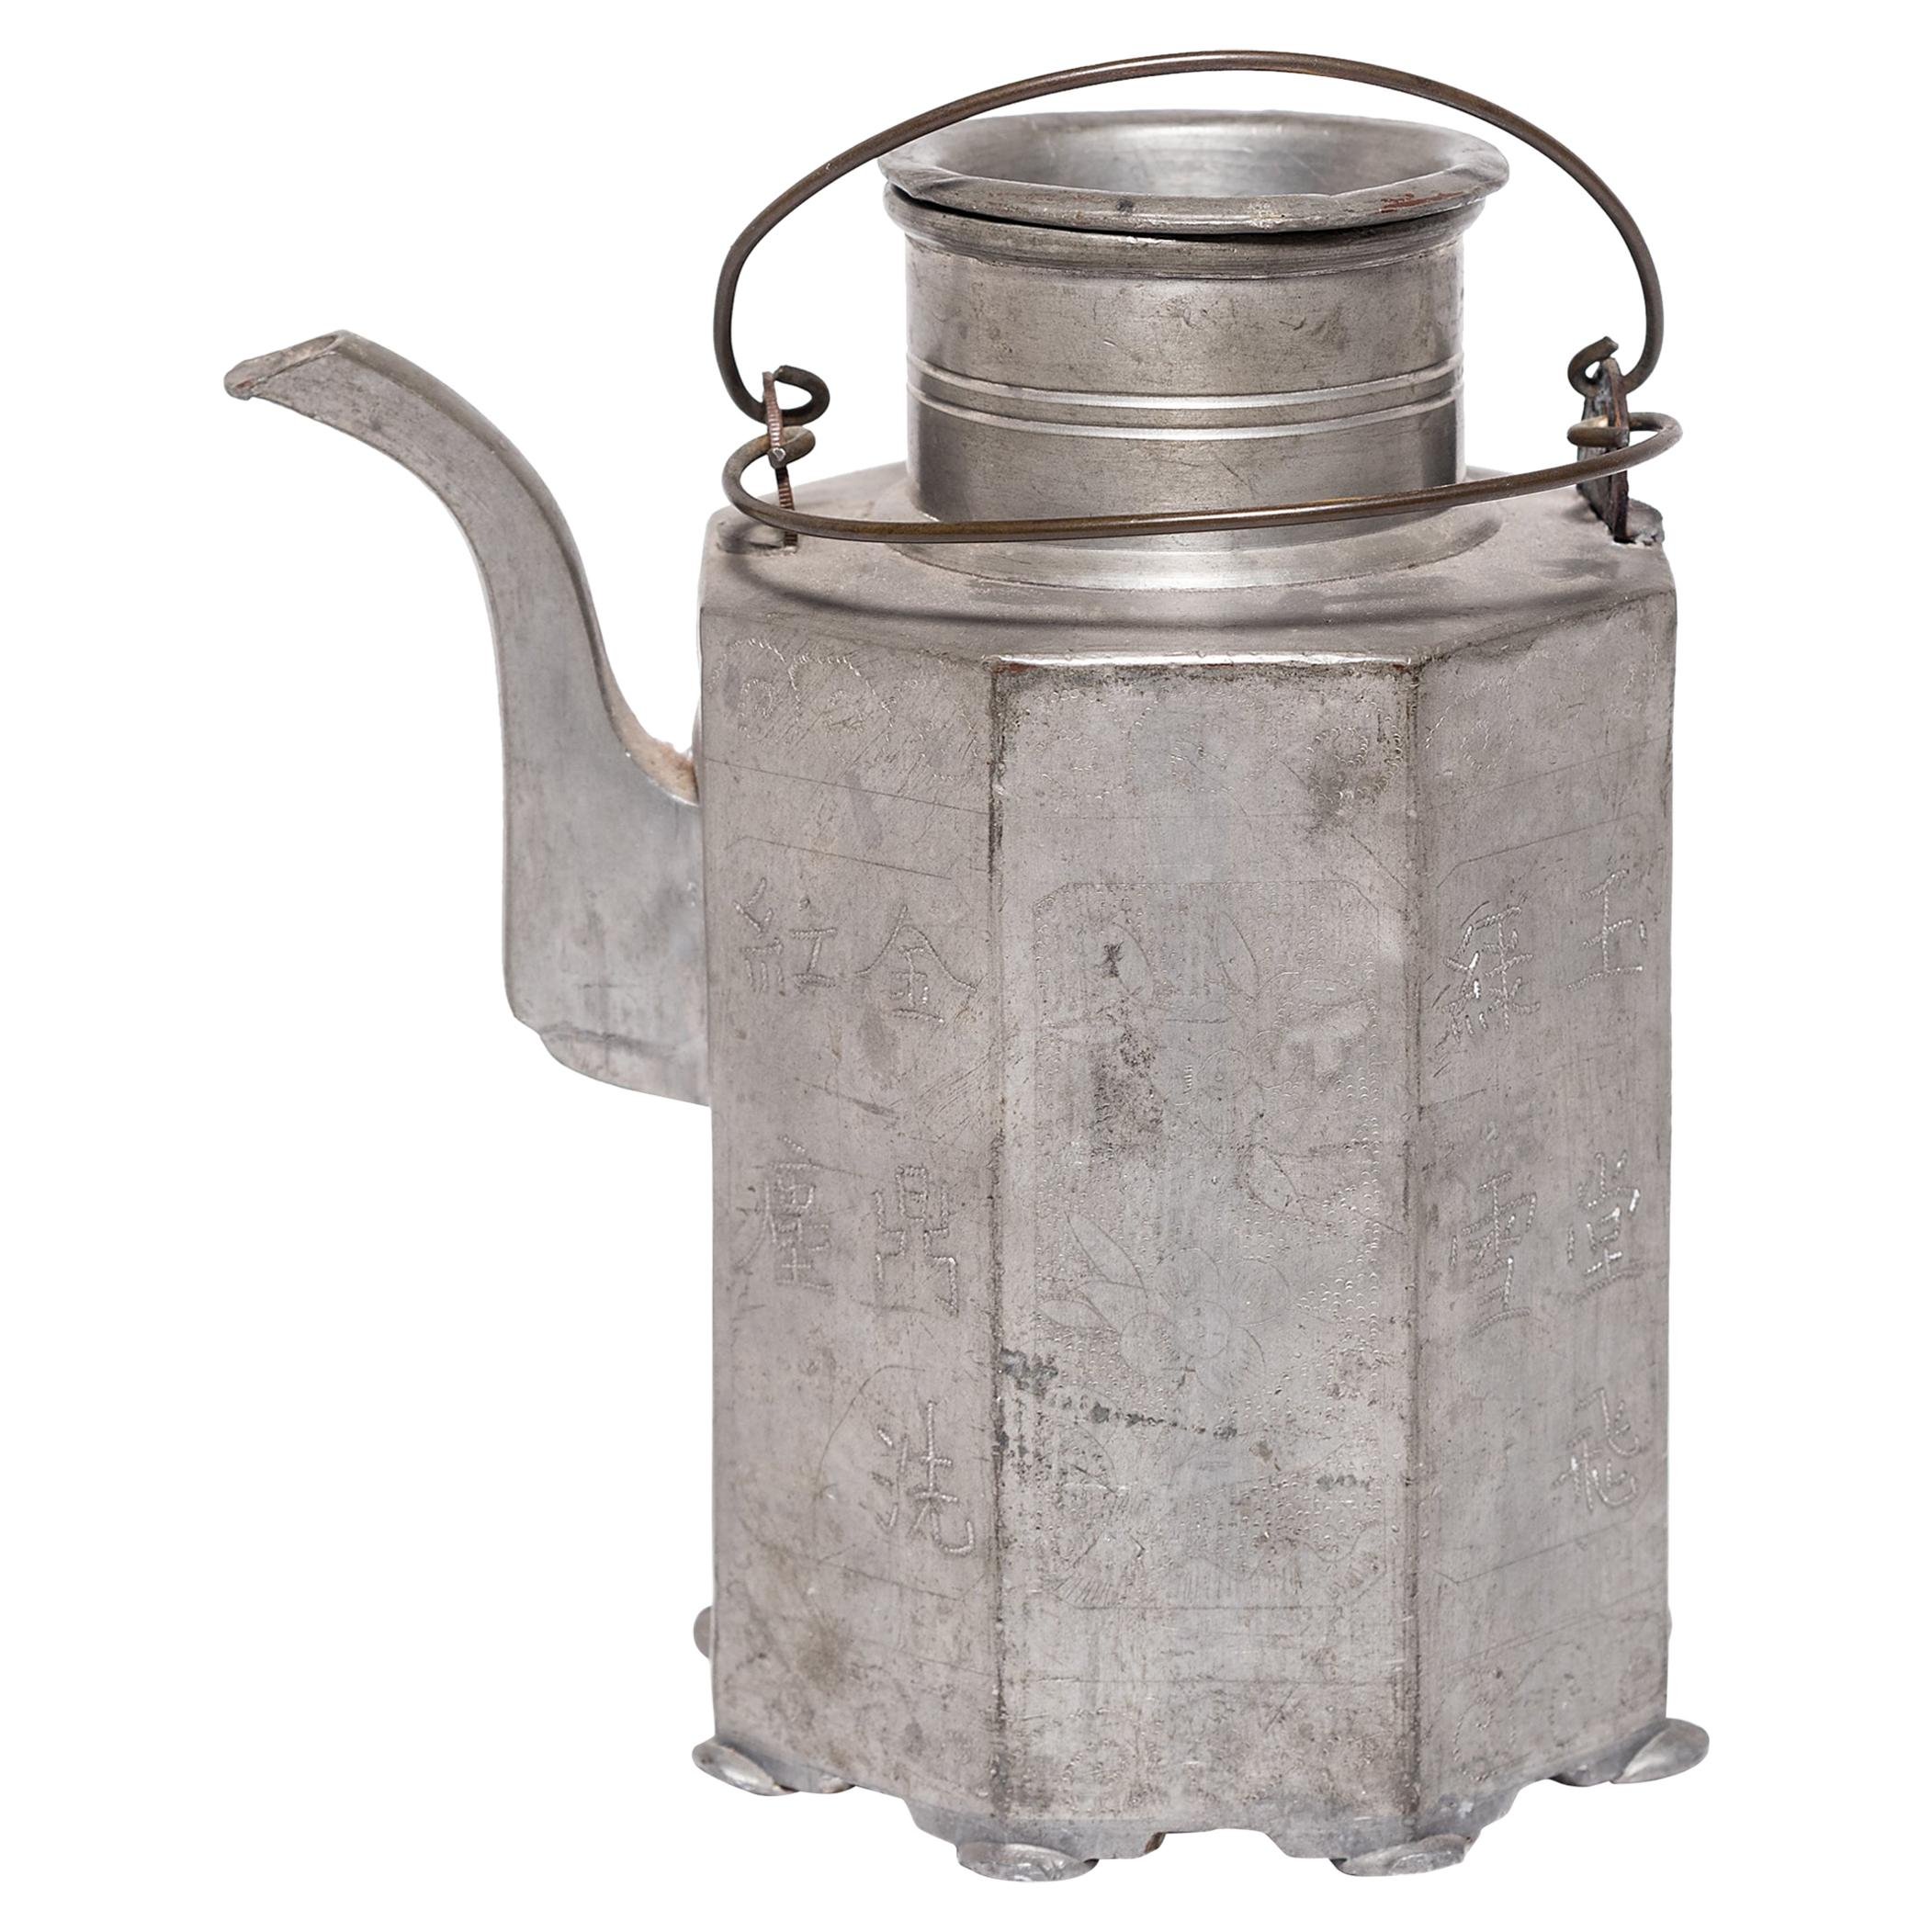 Chinese Etched Pewter Teapot, c. 1910-1920